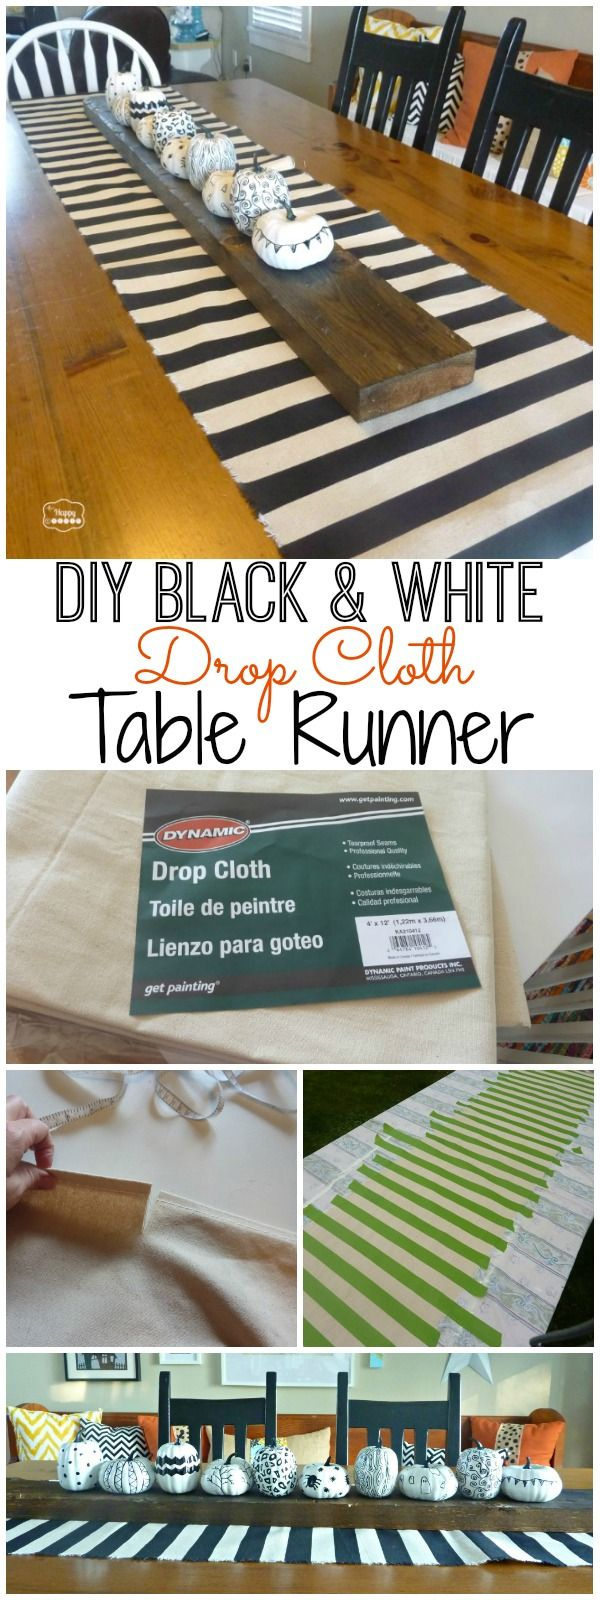 Easy DIY Black and White Dropcloth Table Runner {& 8 Fab Black & White Projects} - The Happy Housie